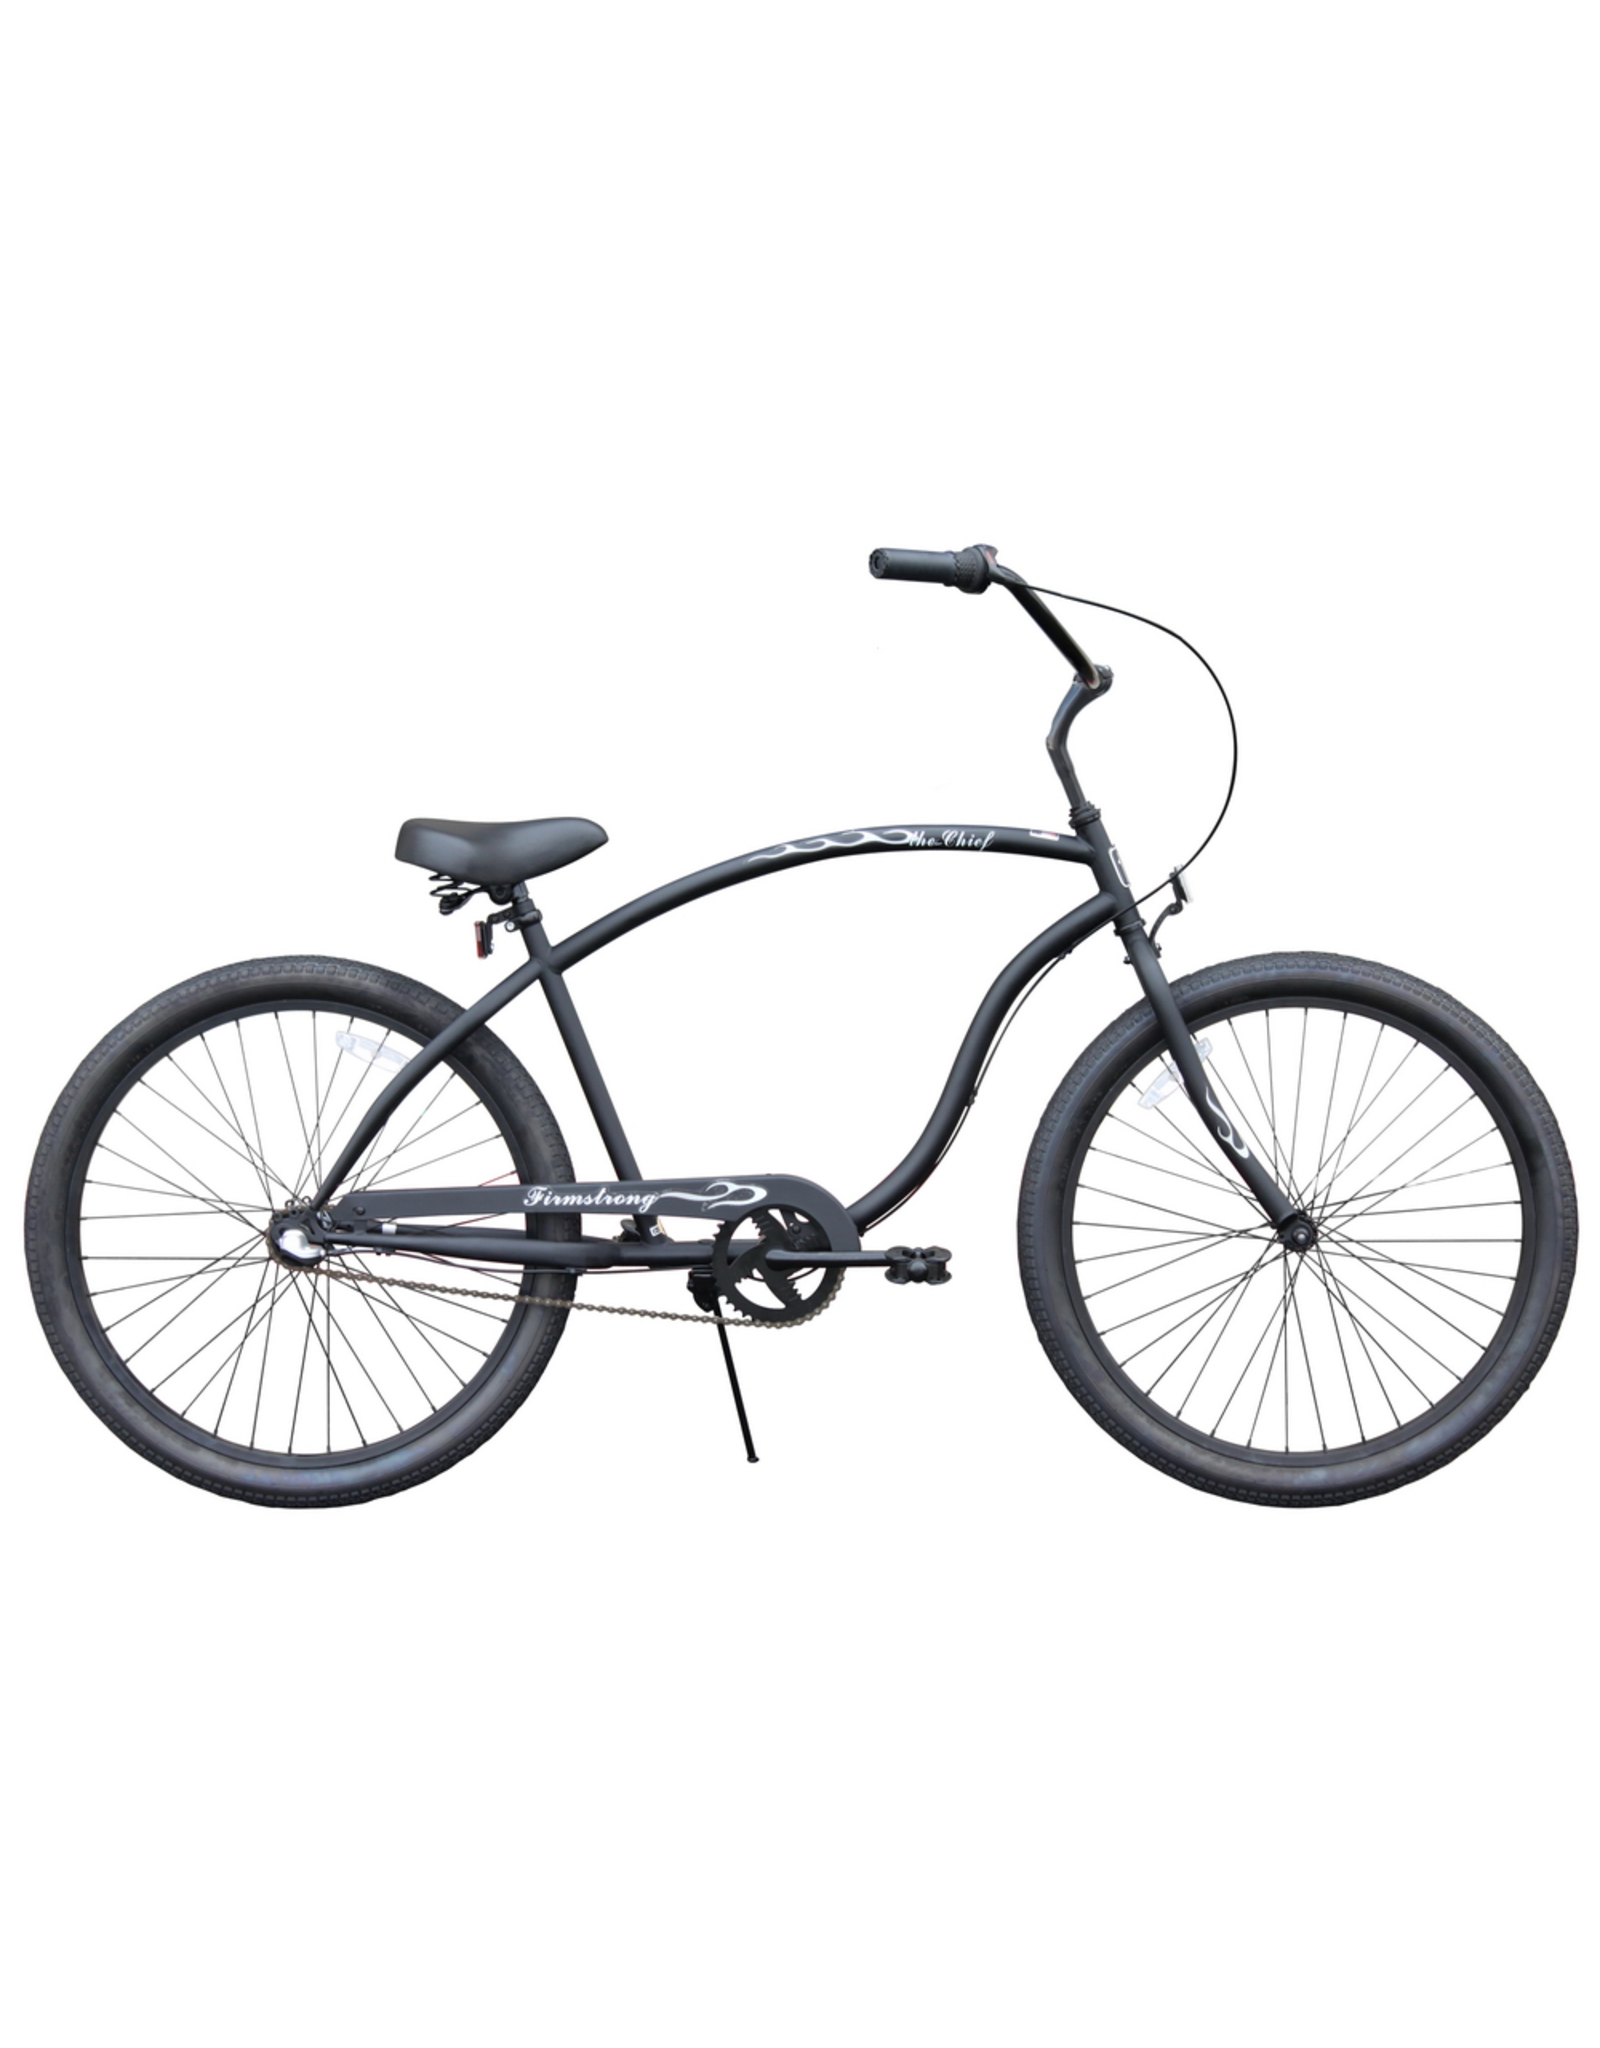 Firmstrong Firmstrong The Chief 3-Speed Step-Over